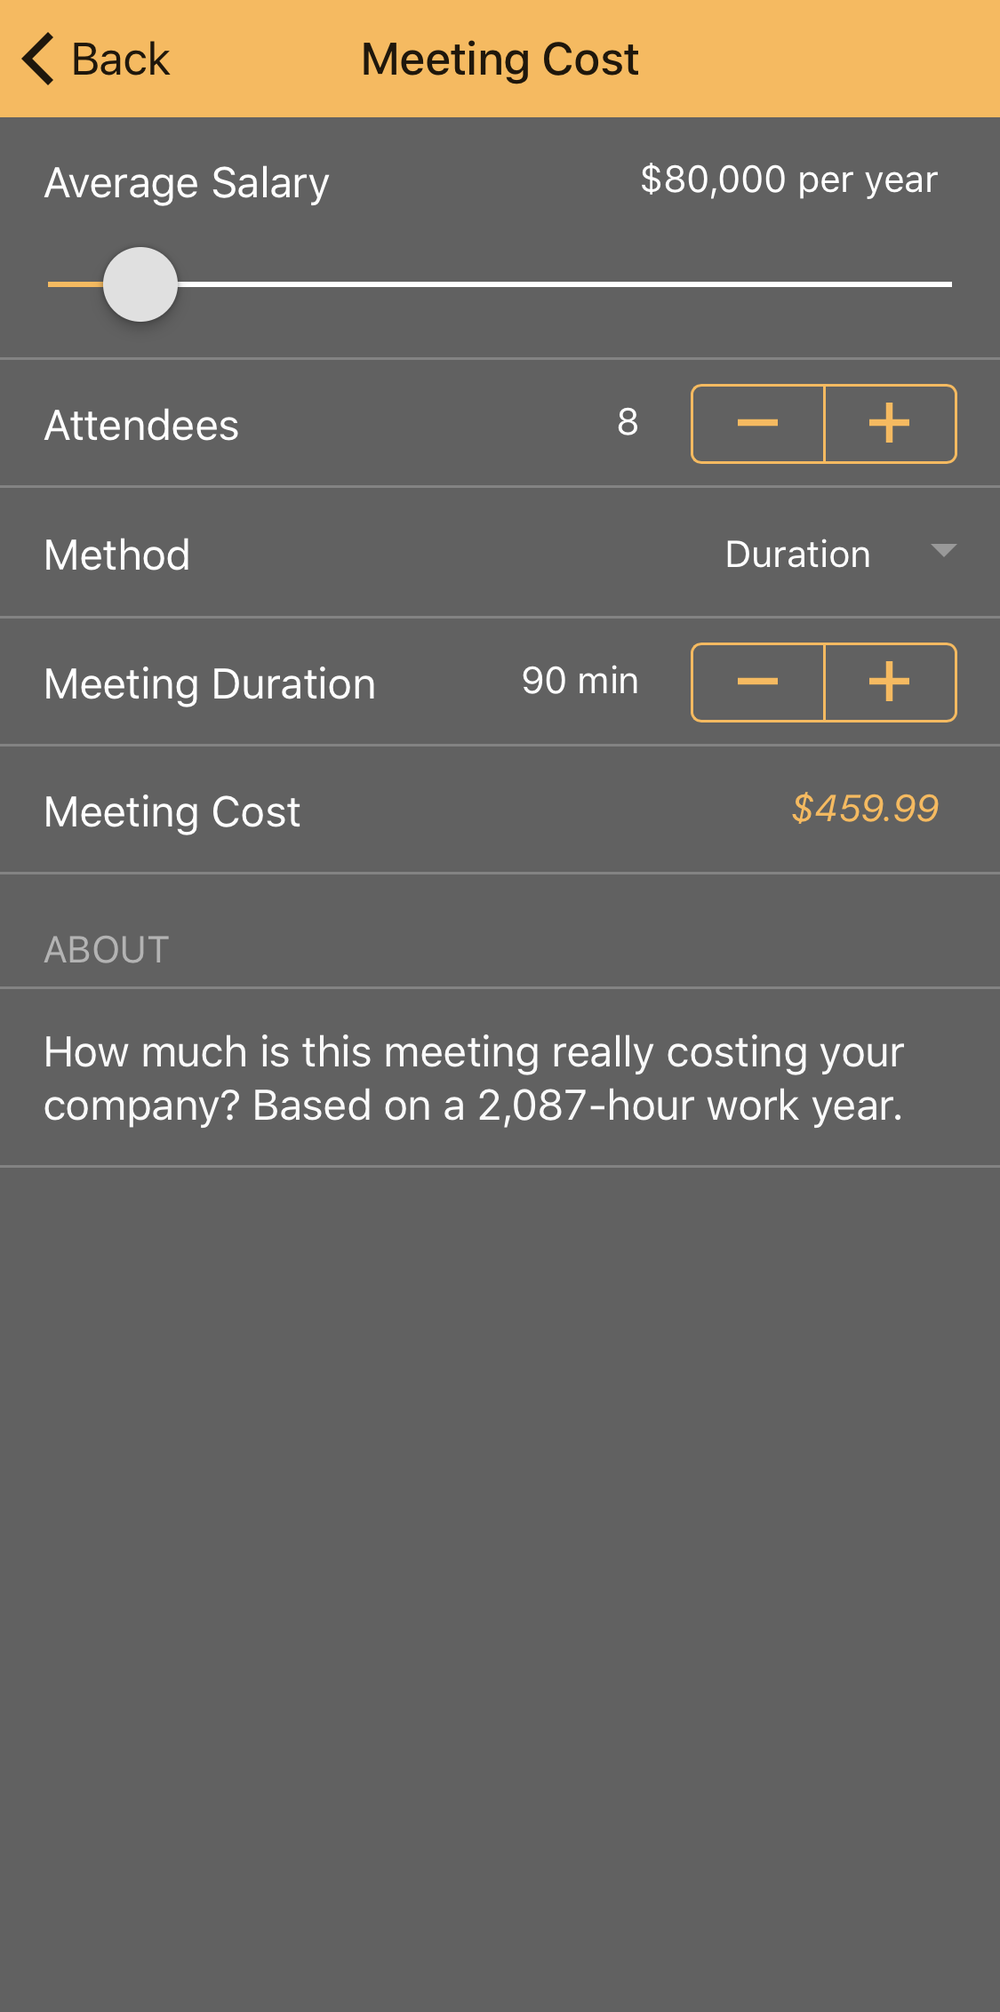 Meeting Cost - For recreational purposes only. How much is this meeting really costing your company?